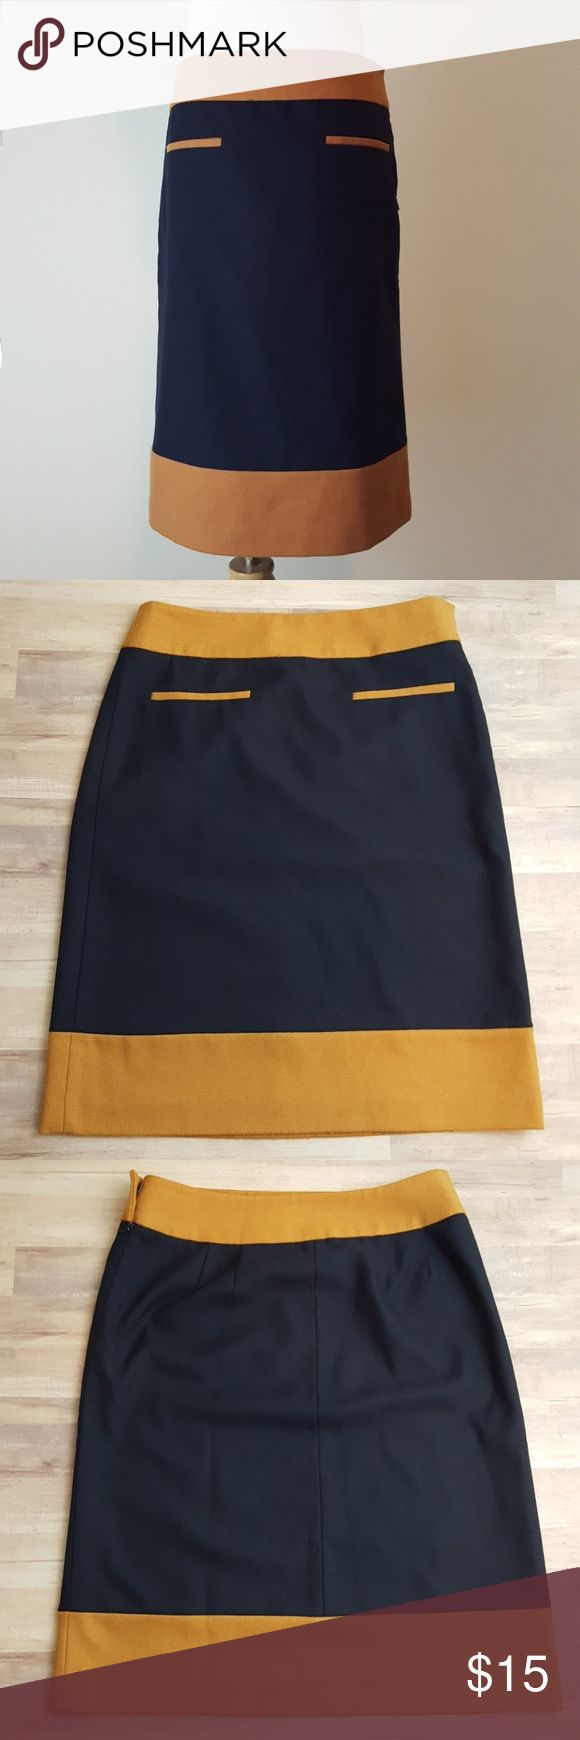 """Ann Taylor Loft Navy & Camel Skirt size 4 Pair with leggings ans knee high riding boots. Wool like feel. Size zipper and hook closure. Flat unopenes front pockets.  Size 4 Flat waist: 16"""" Length: 23.5"""" Ann Taylor Skirts Midi"""